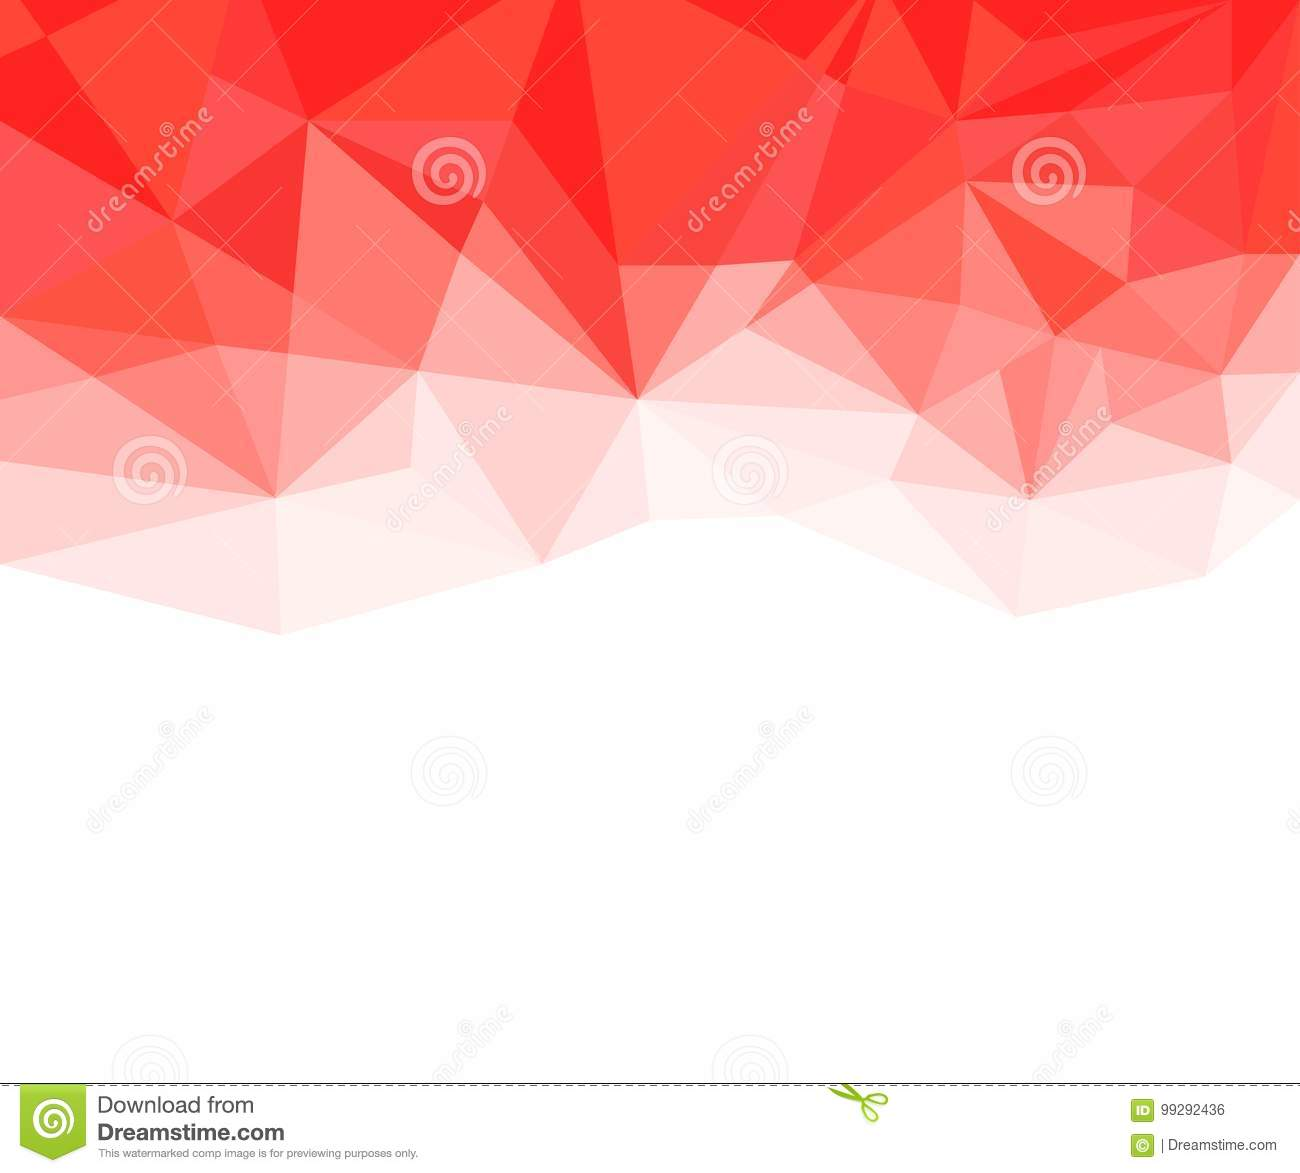 Geometric Red And White Abstract Vector Background For Use In Design Stock Vector Illustration Of Cover Pattern 99292436